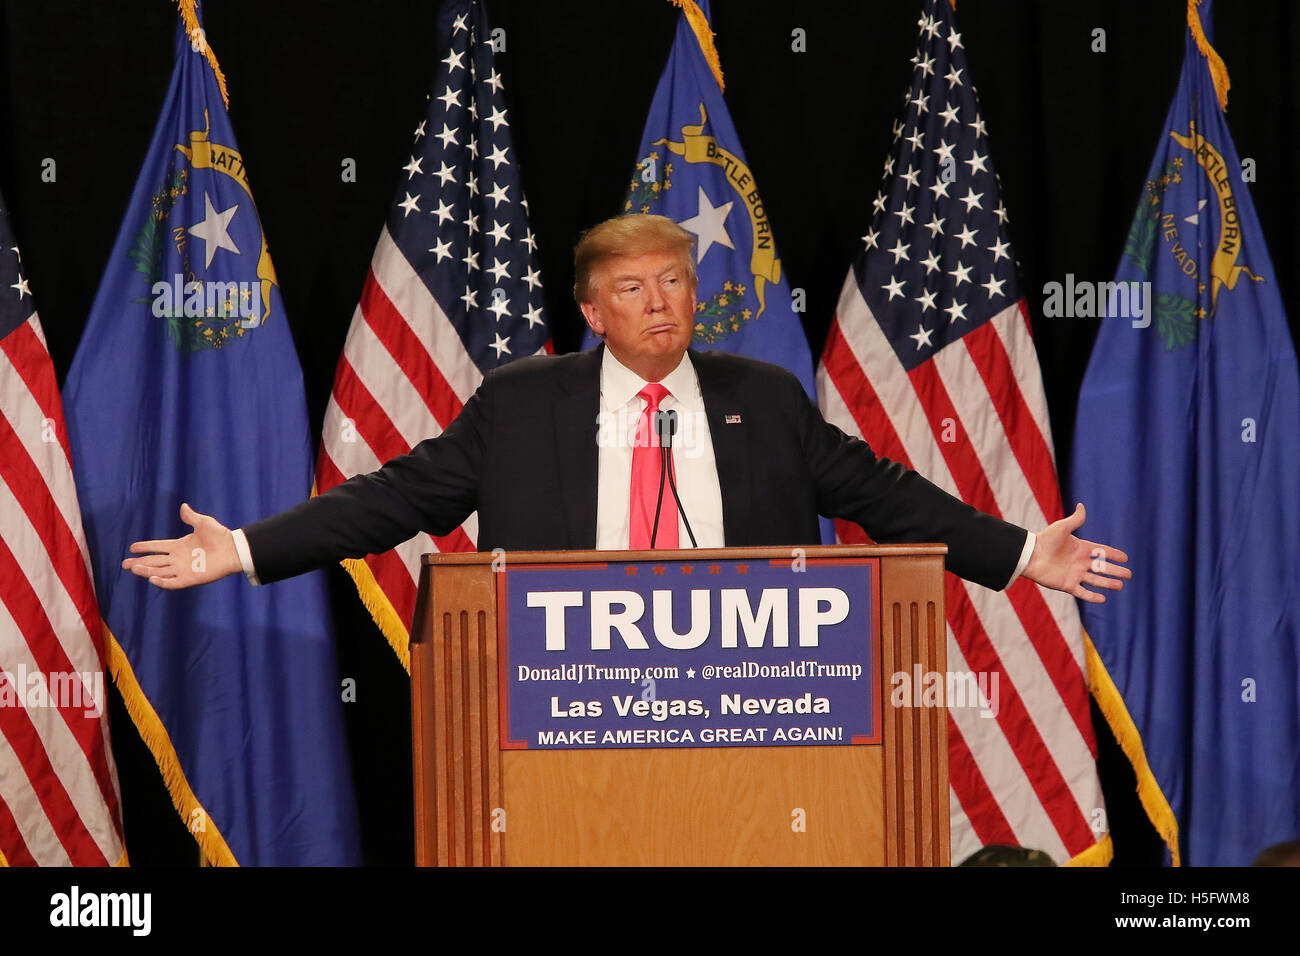 Donald J. Trump speaking at a rally at the South Point Resort and Casino on January 21st, 2016 in Las Vegas Nevada. - Stock Image